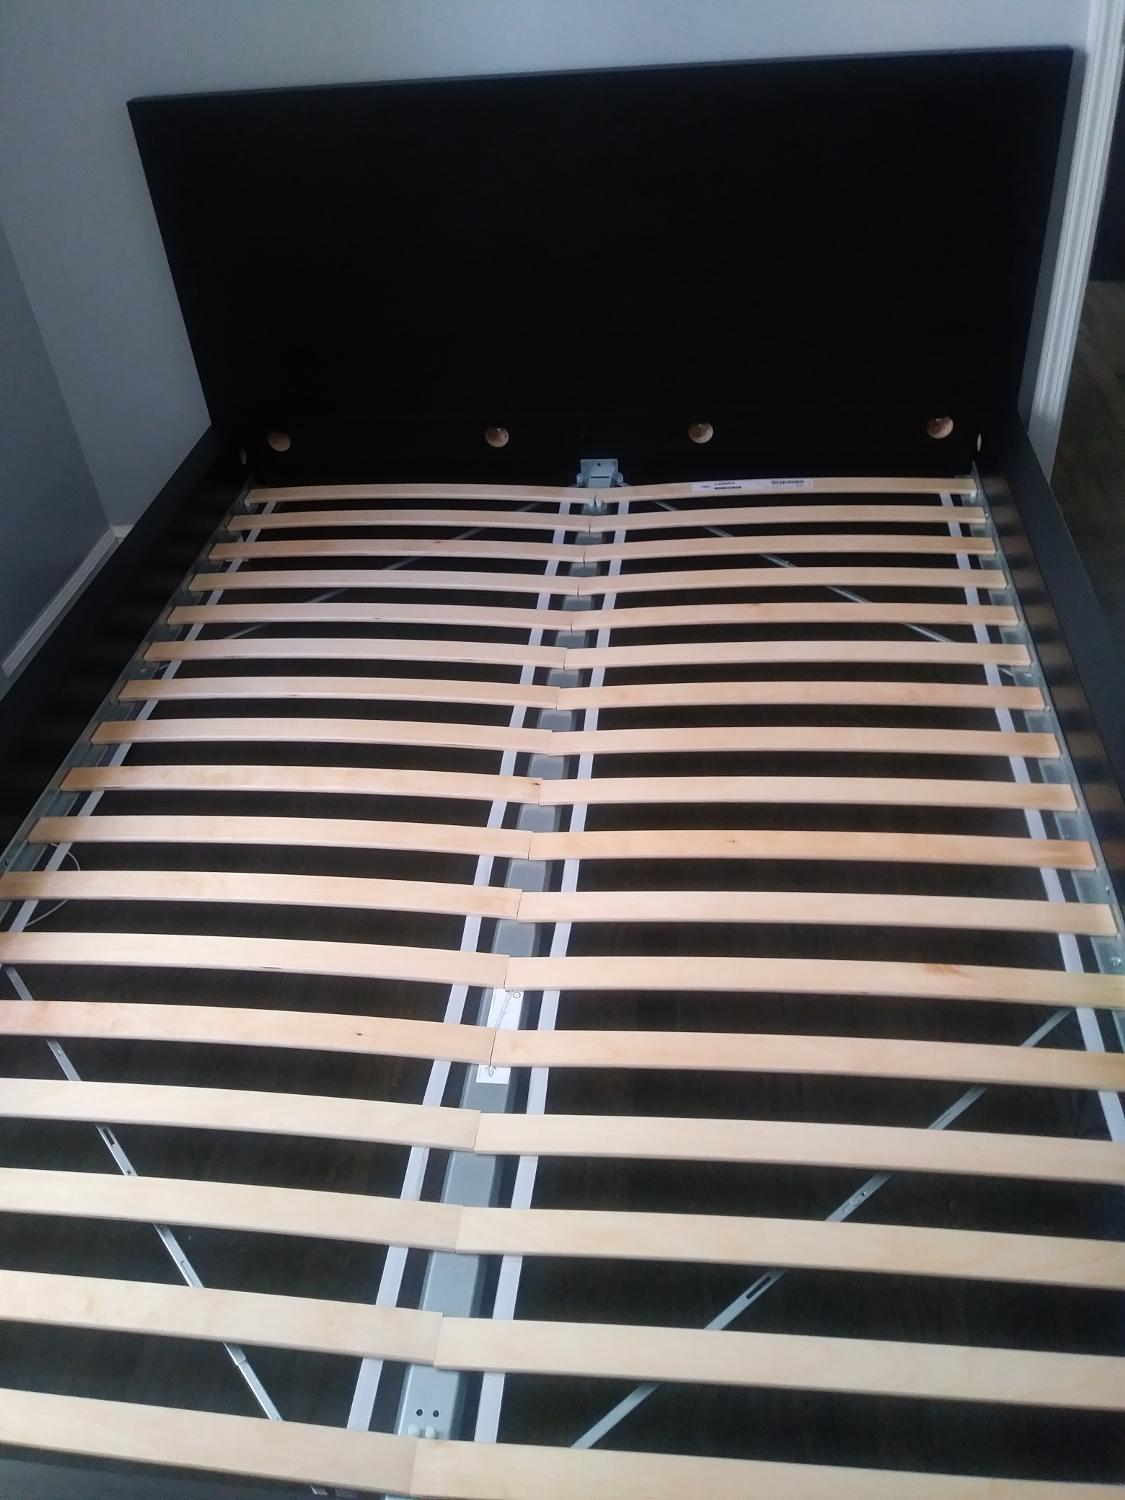 Best Ikea Queen Size Malm Bed Frame For Sale In Manhattan New York 2021